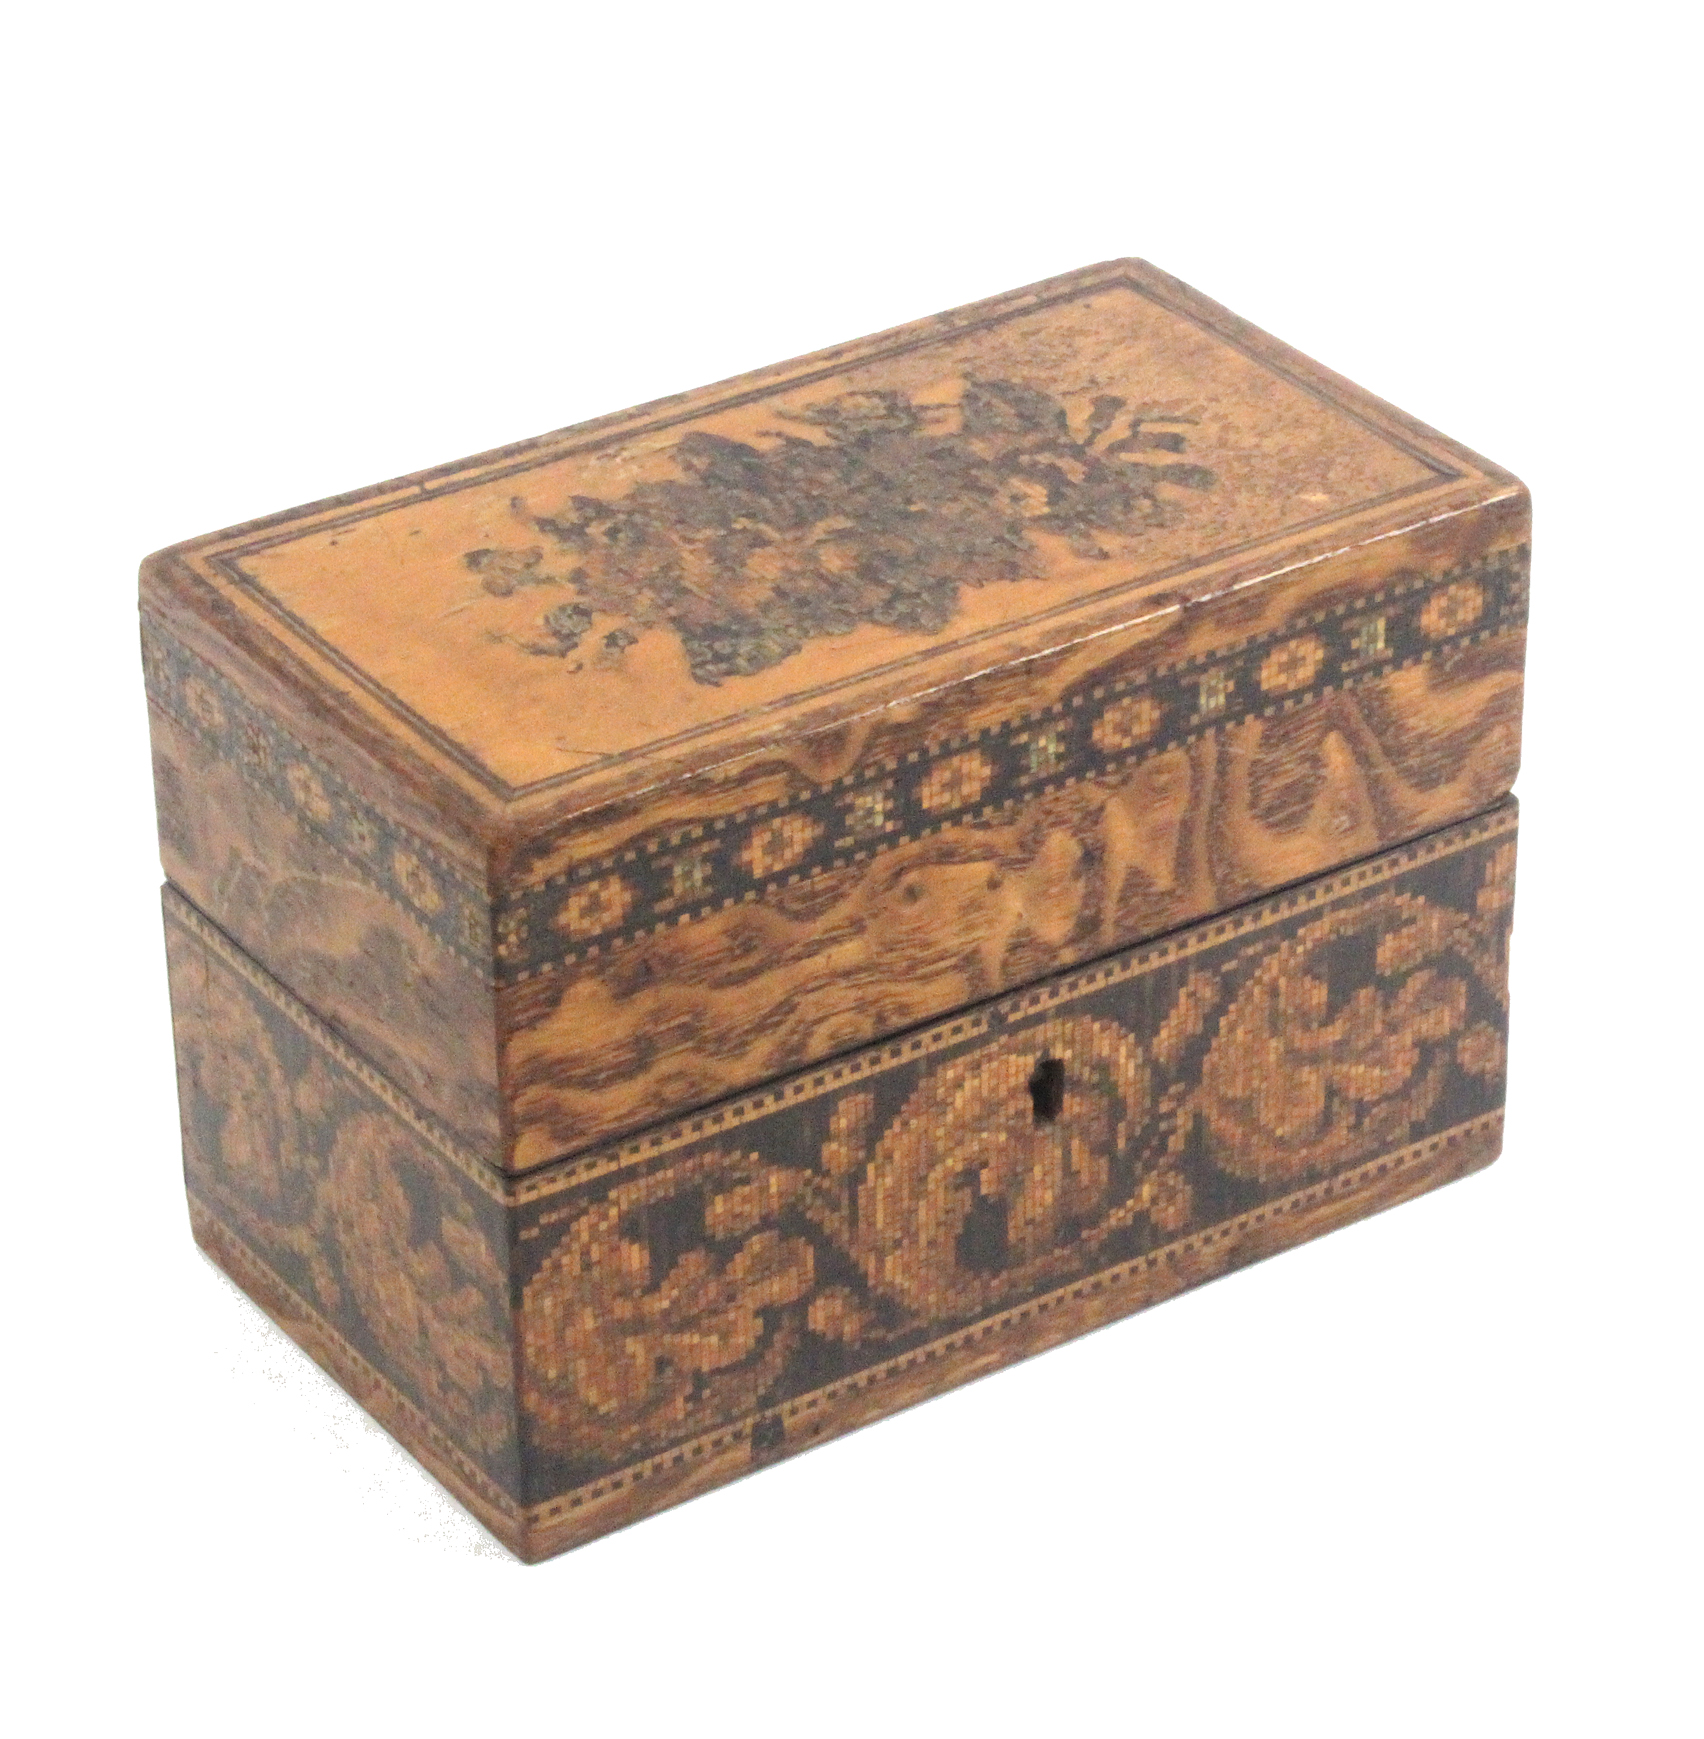 A Tunbridge ware box by Edmund Nye, the lid inset with a floral mosaic, the sides with a band of